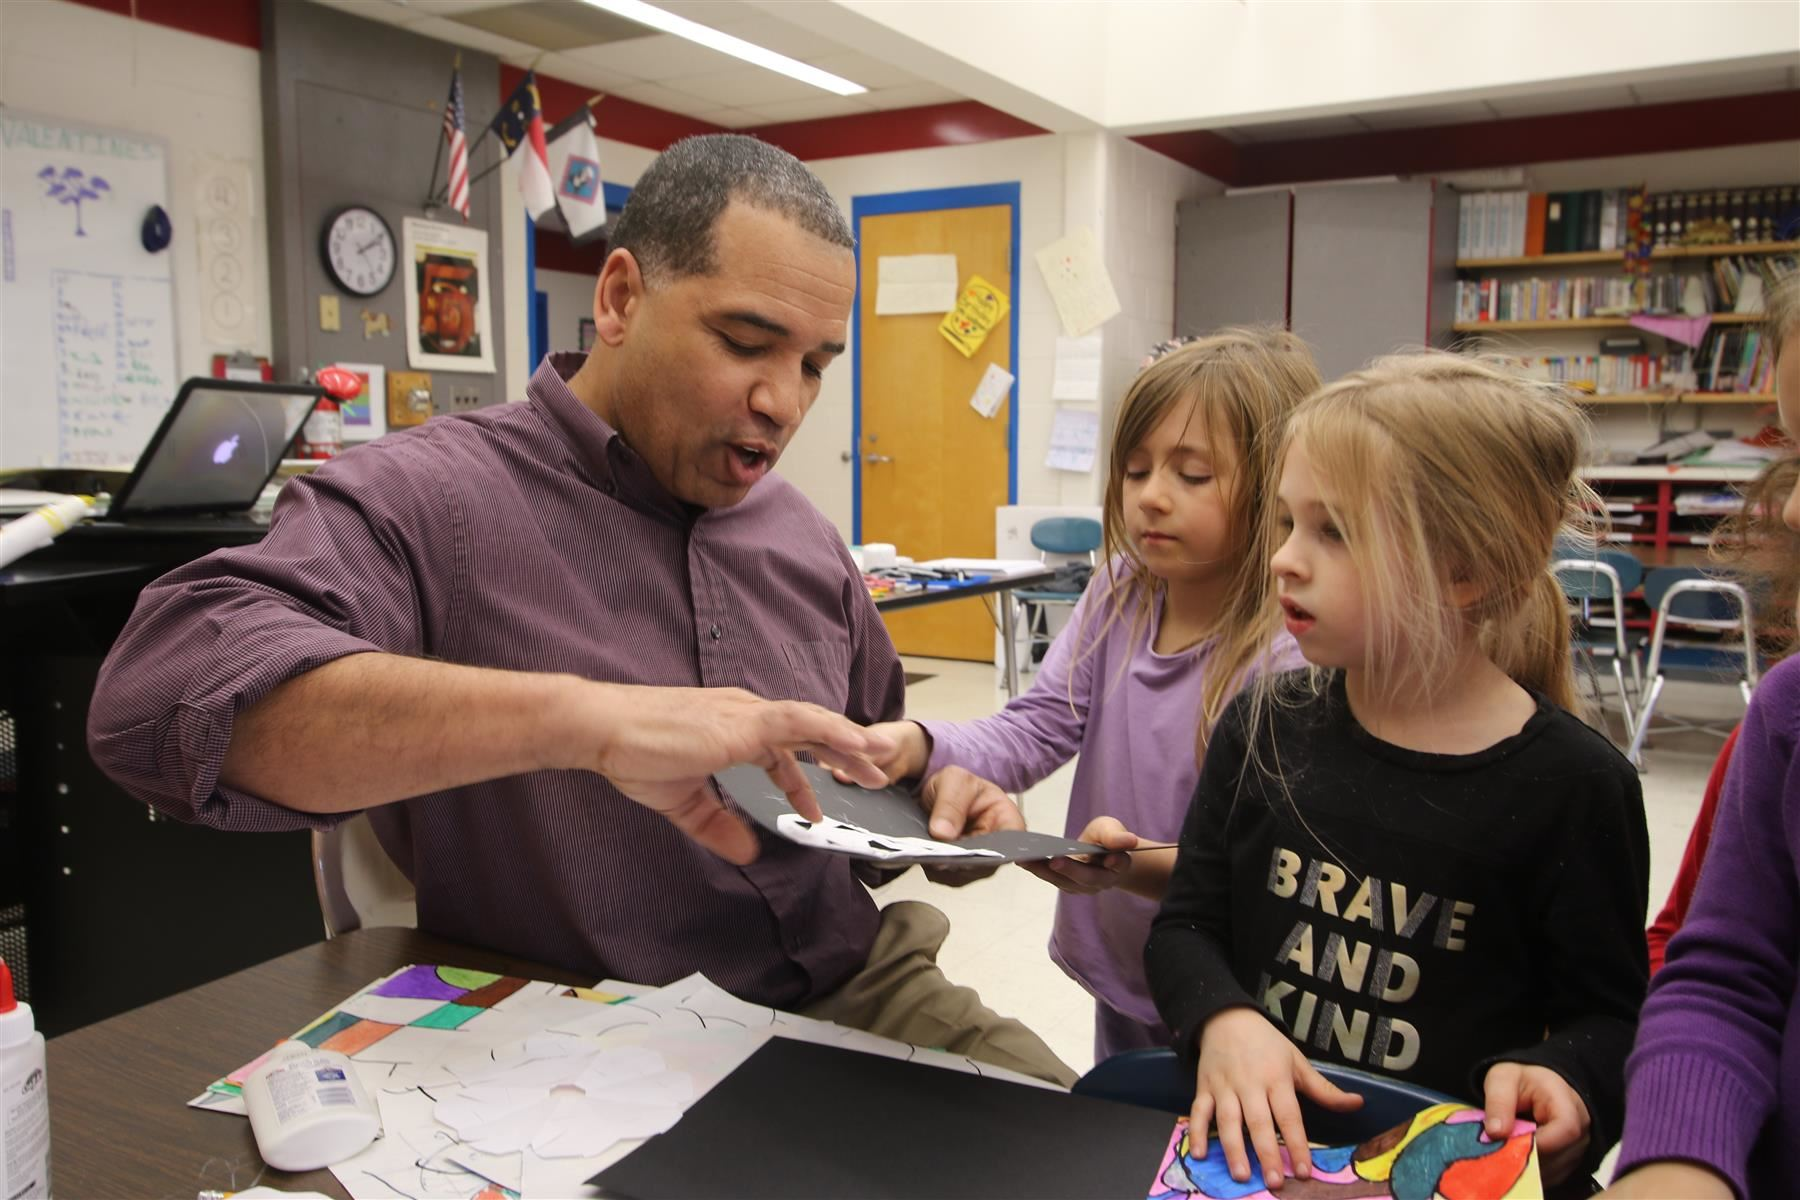 Darren Wellman works with students at Pittsboro Elementary School.